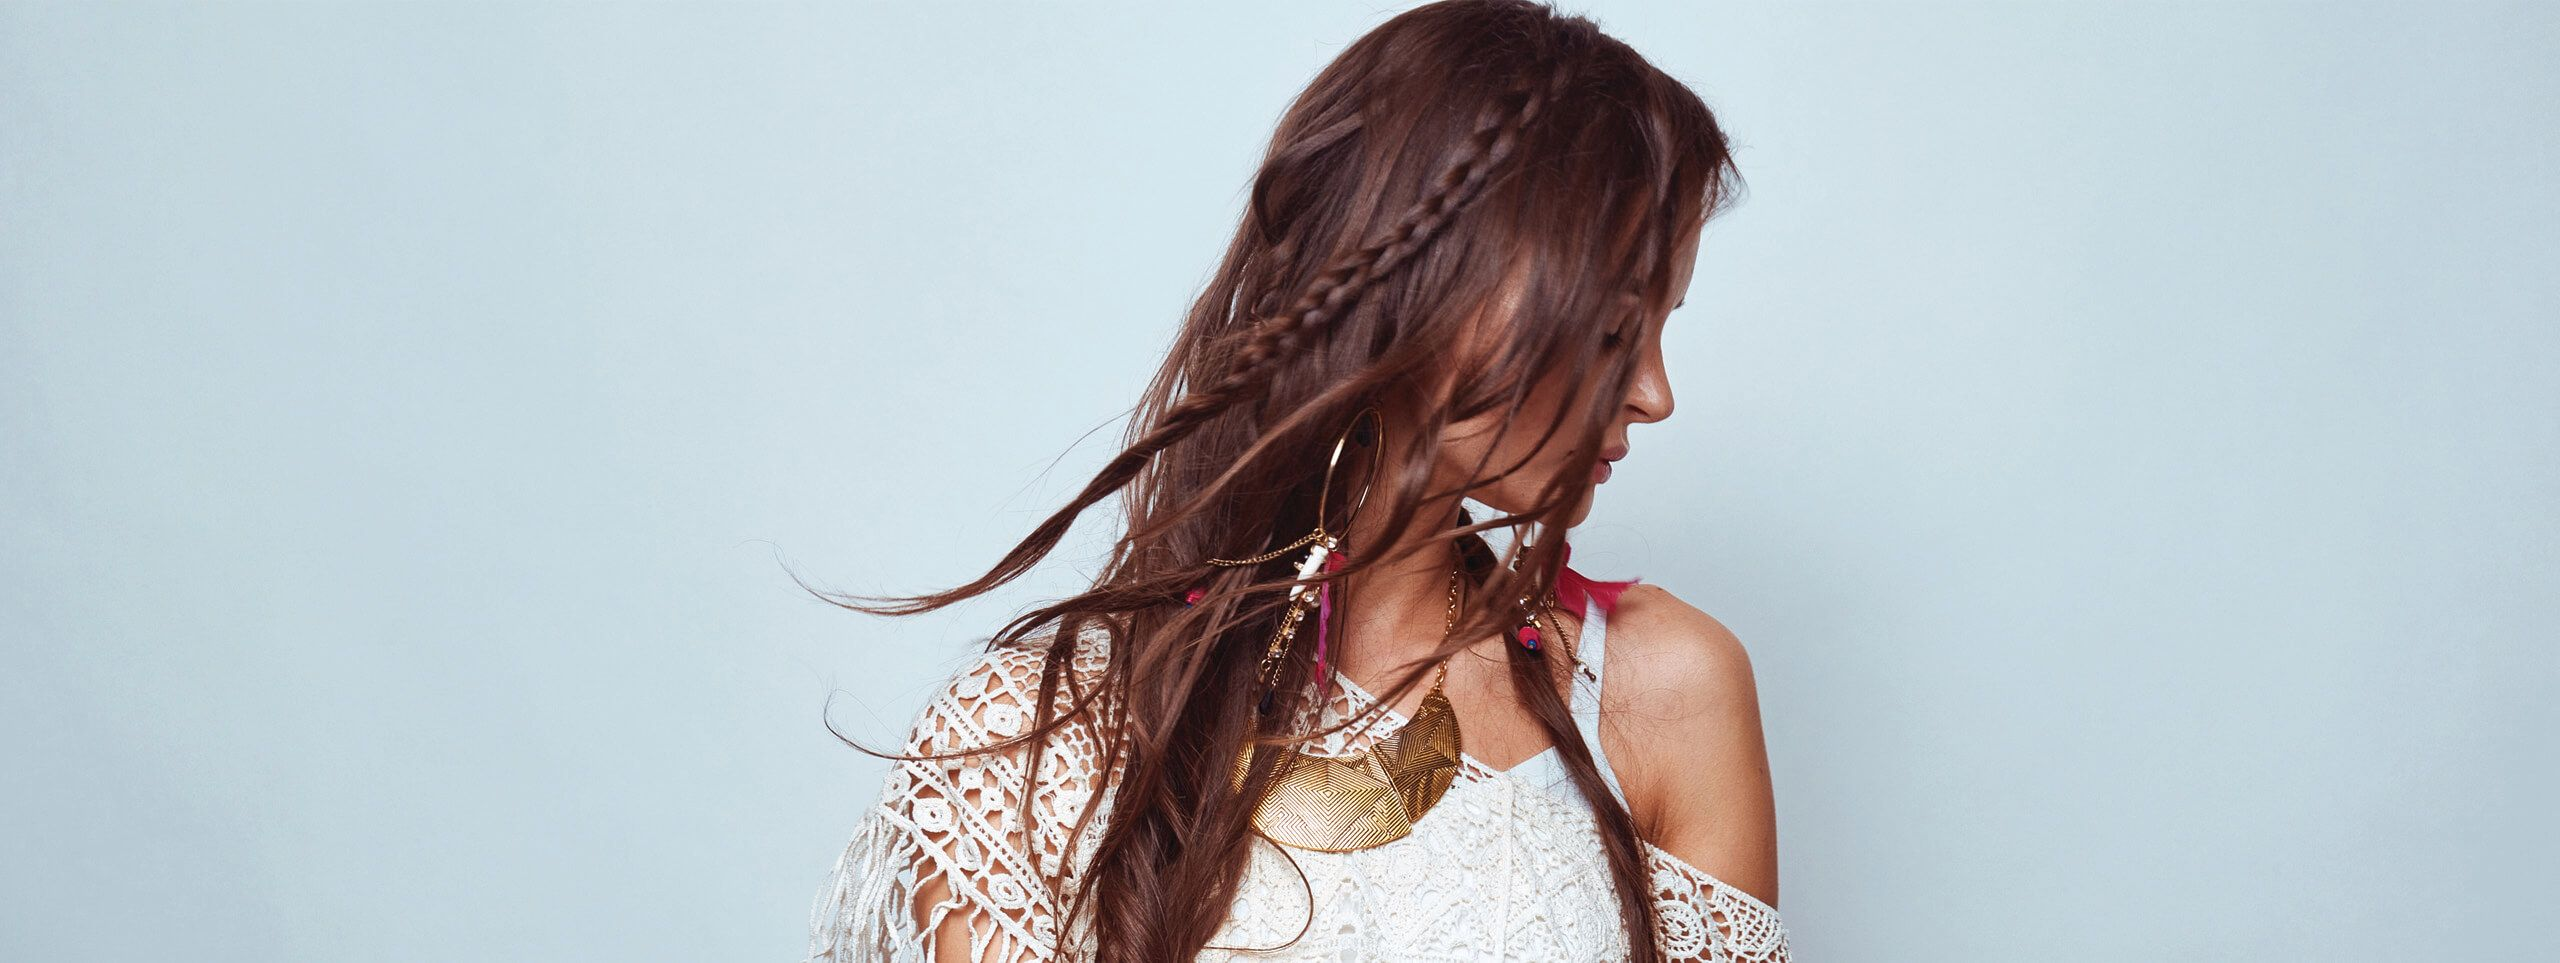 Model with long middle-parted hair and boho, wavy hairstyle